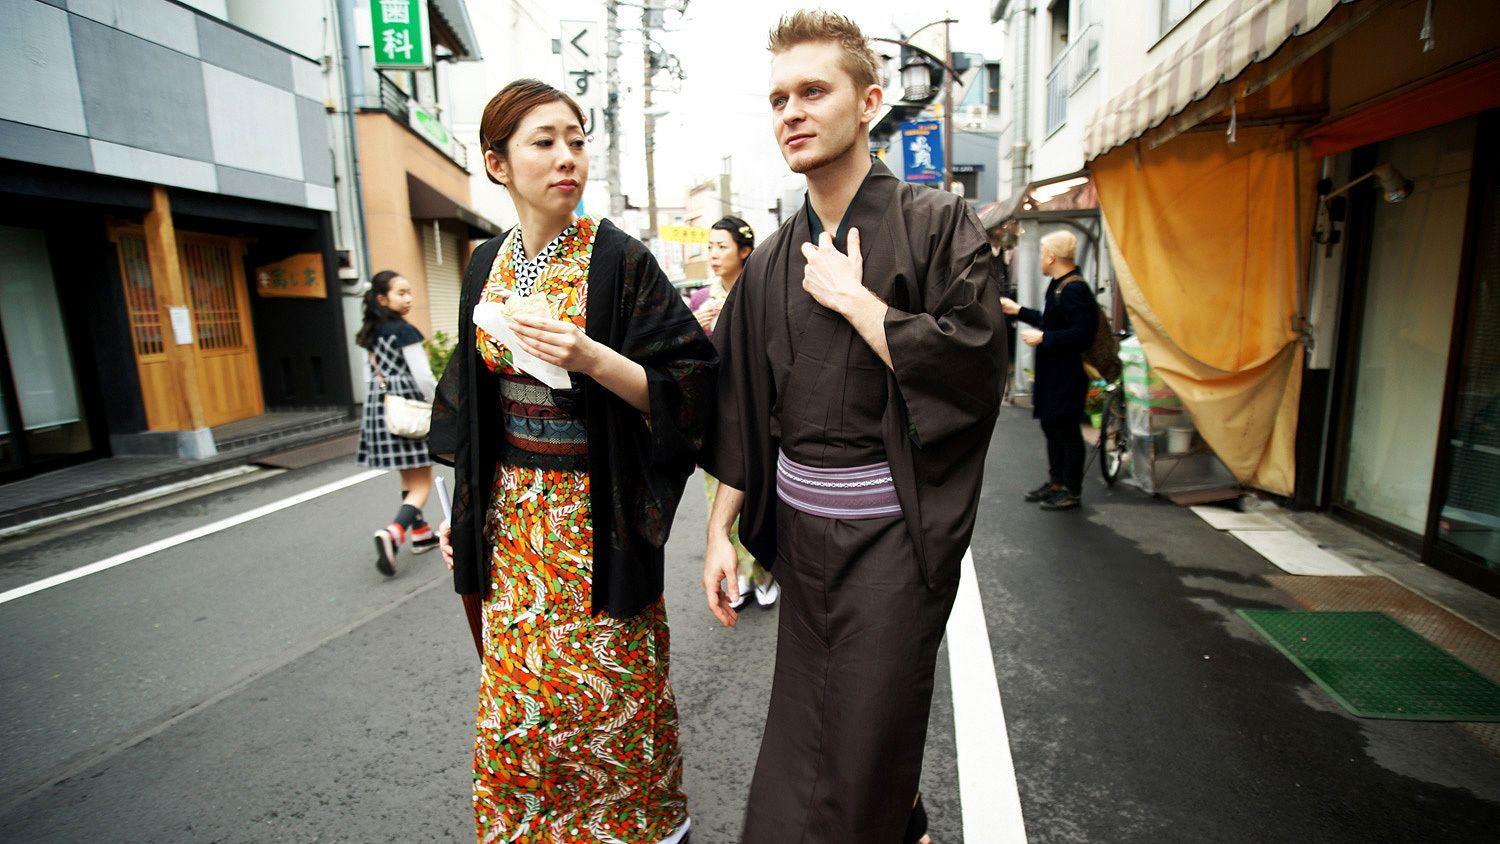 Man and Woman walk down the street in traditional Japanese costumes